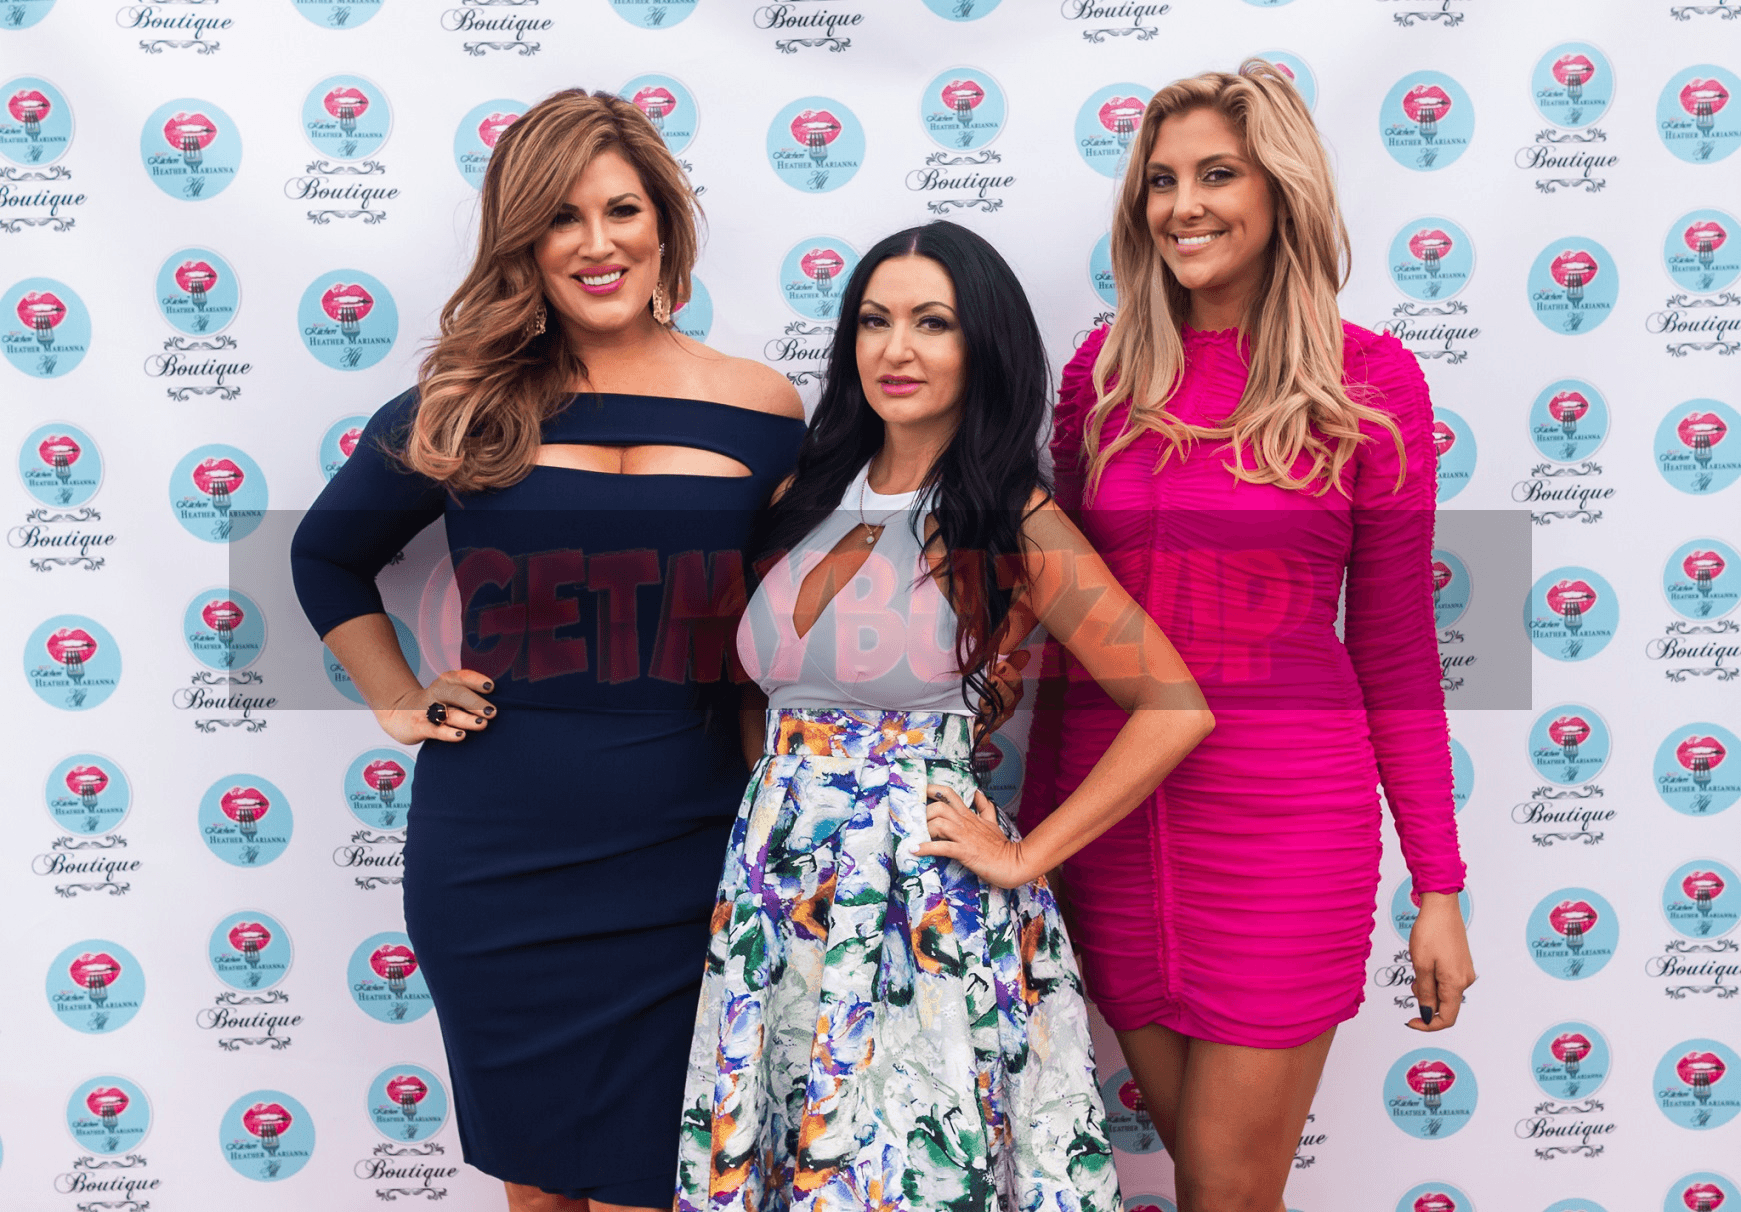 Celeb Stalking: The Real Housewives of Orange County Stars, Emily Simpson and Gina Kirschenheiter, Host Grand Opening of Beauty Kitchen Boutique #RHOC #RHOOC [Photos]